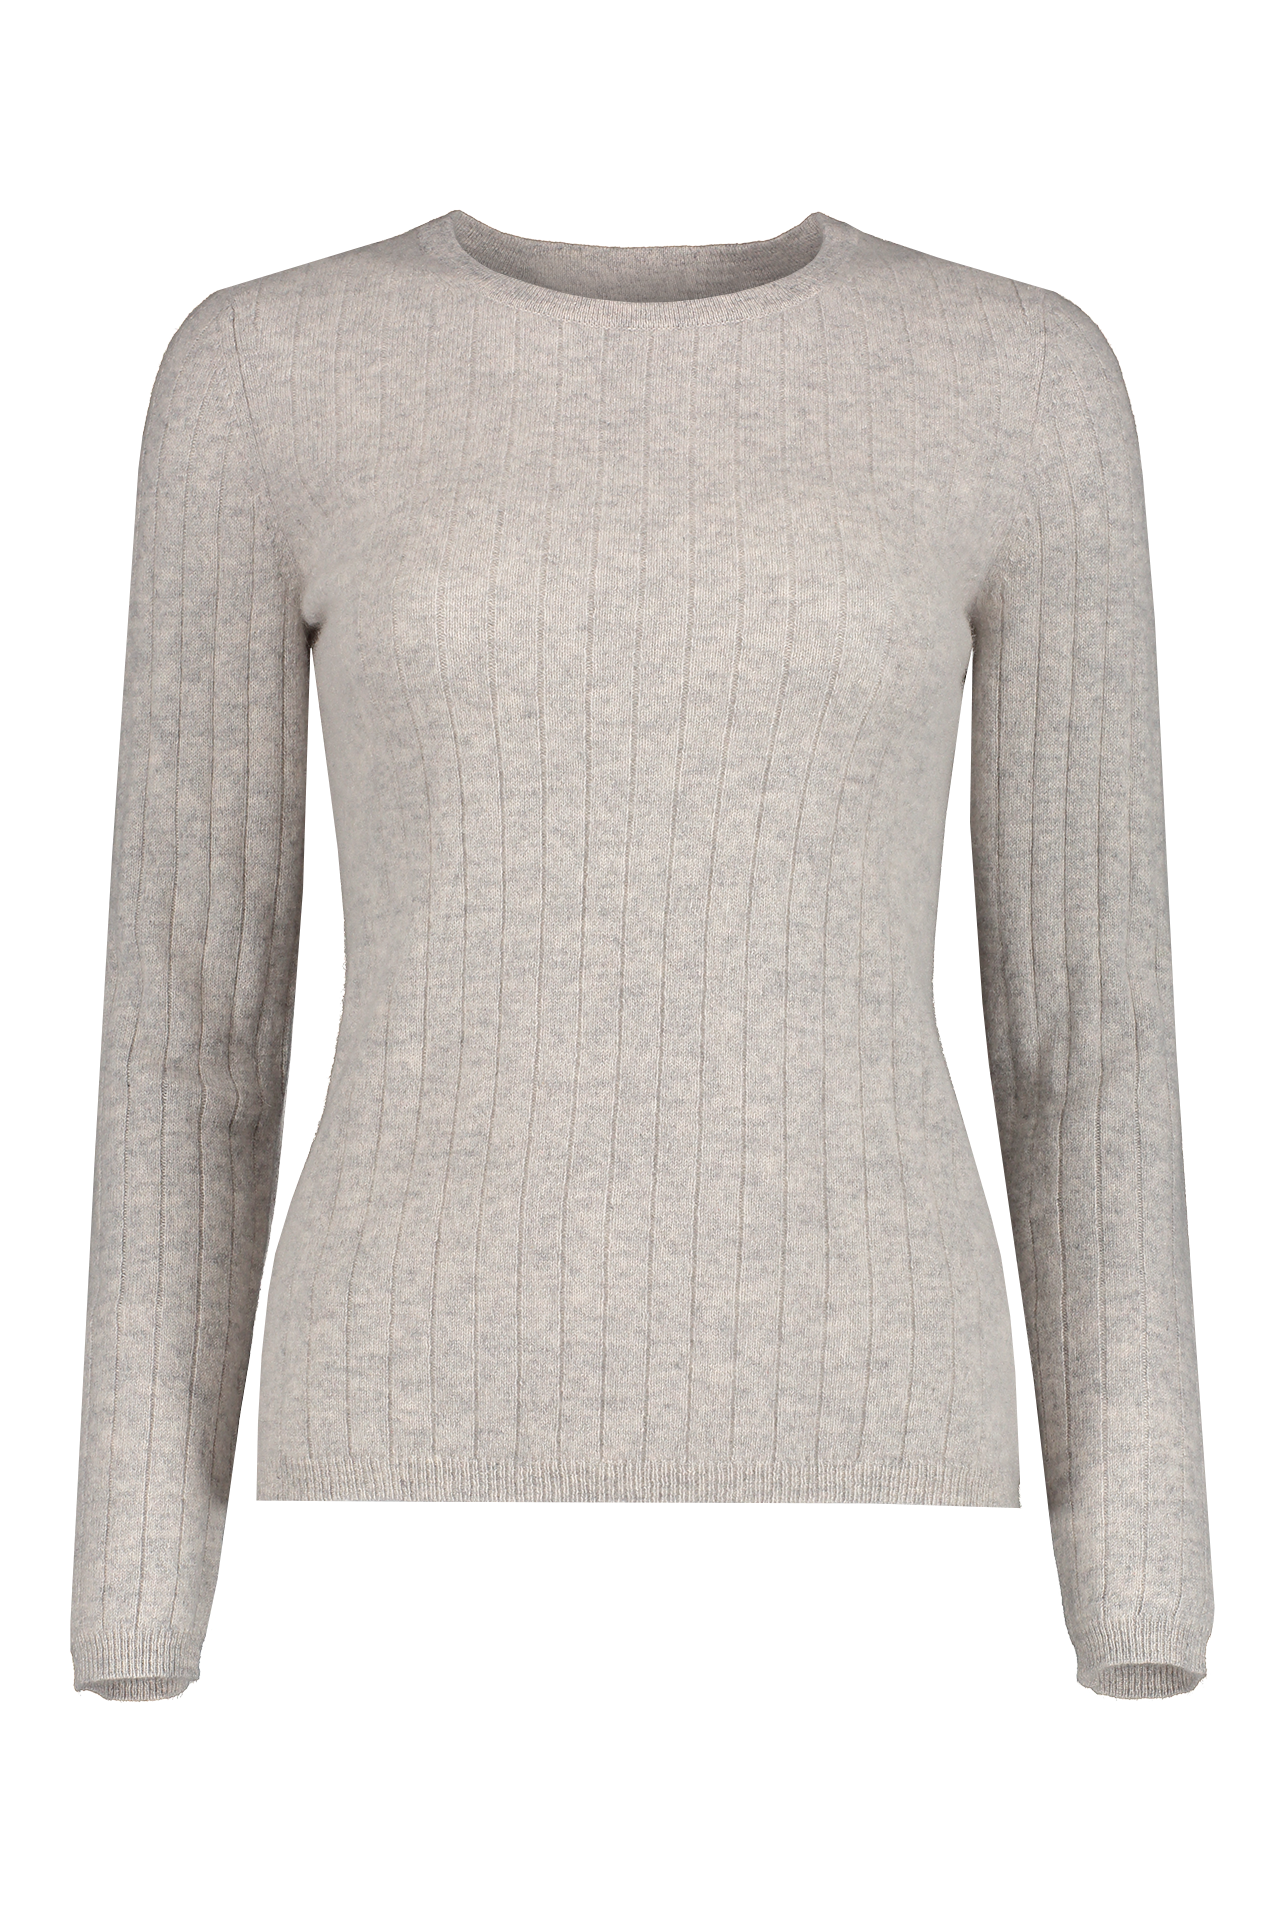 Front view image of White & Warren Women's Slim Sweater Misty Grey